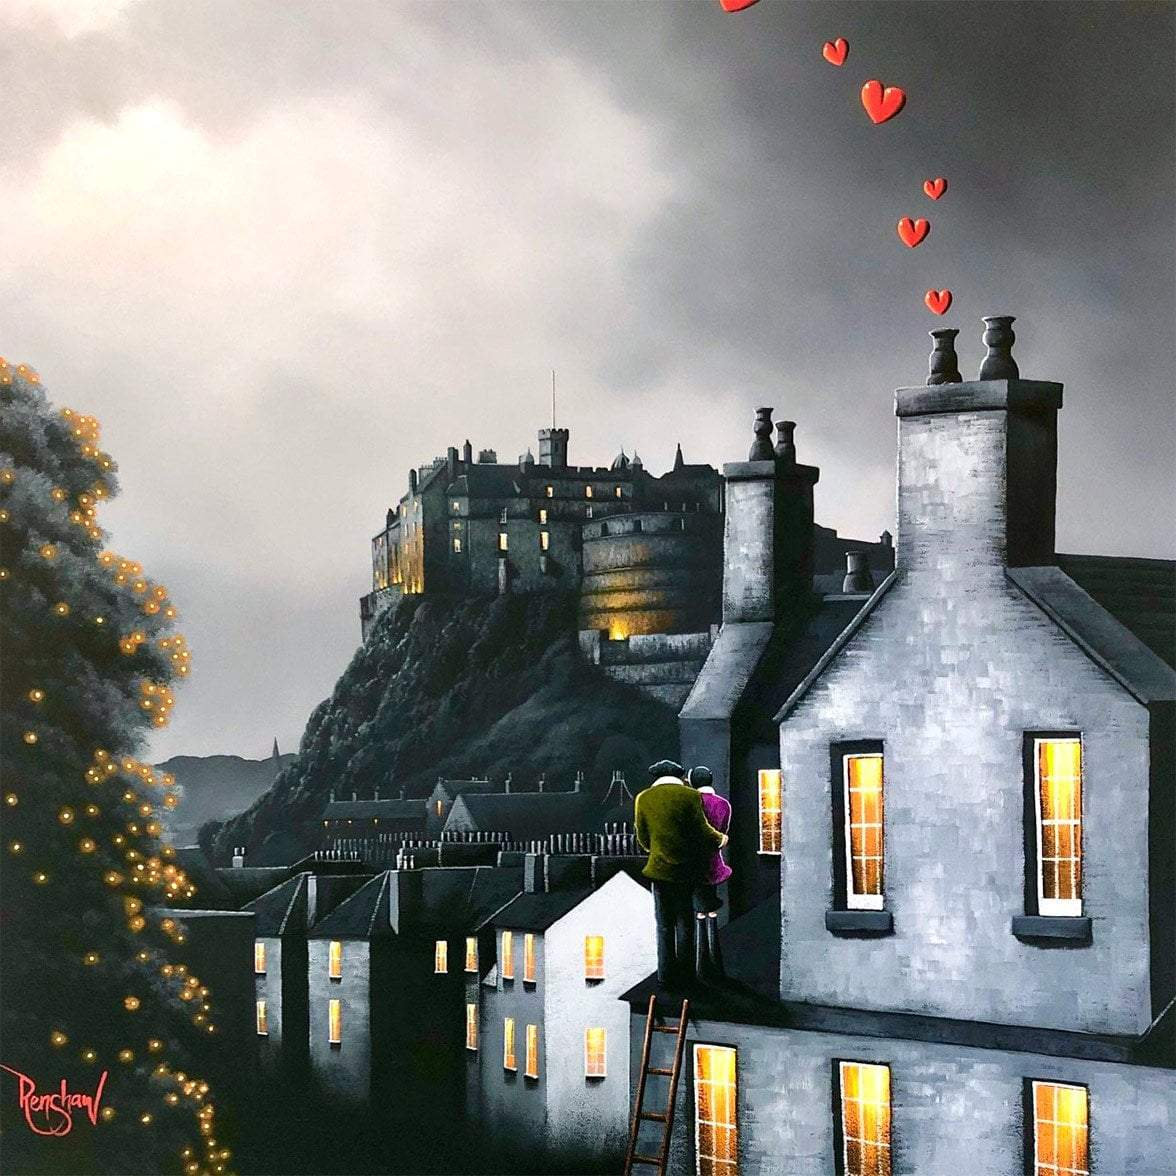 Our Edinburgh David Renshaw Framed